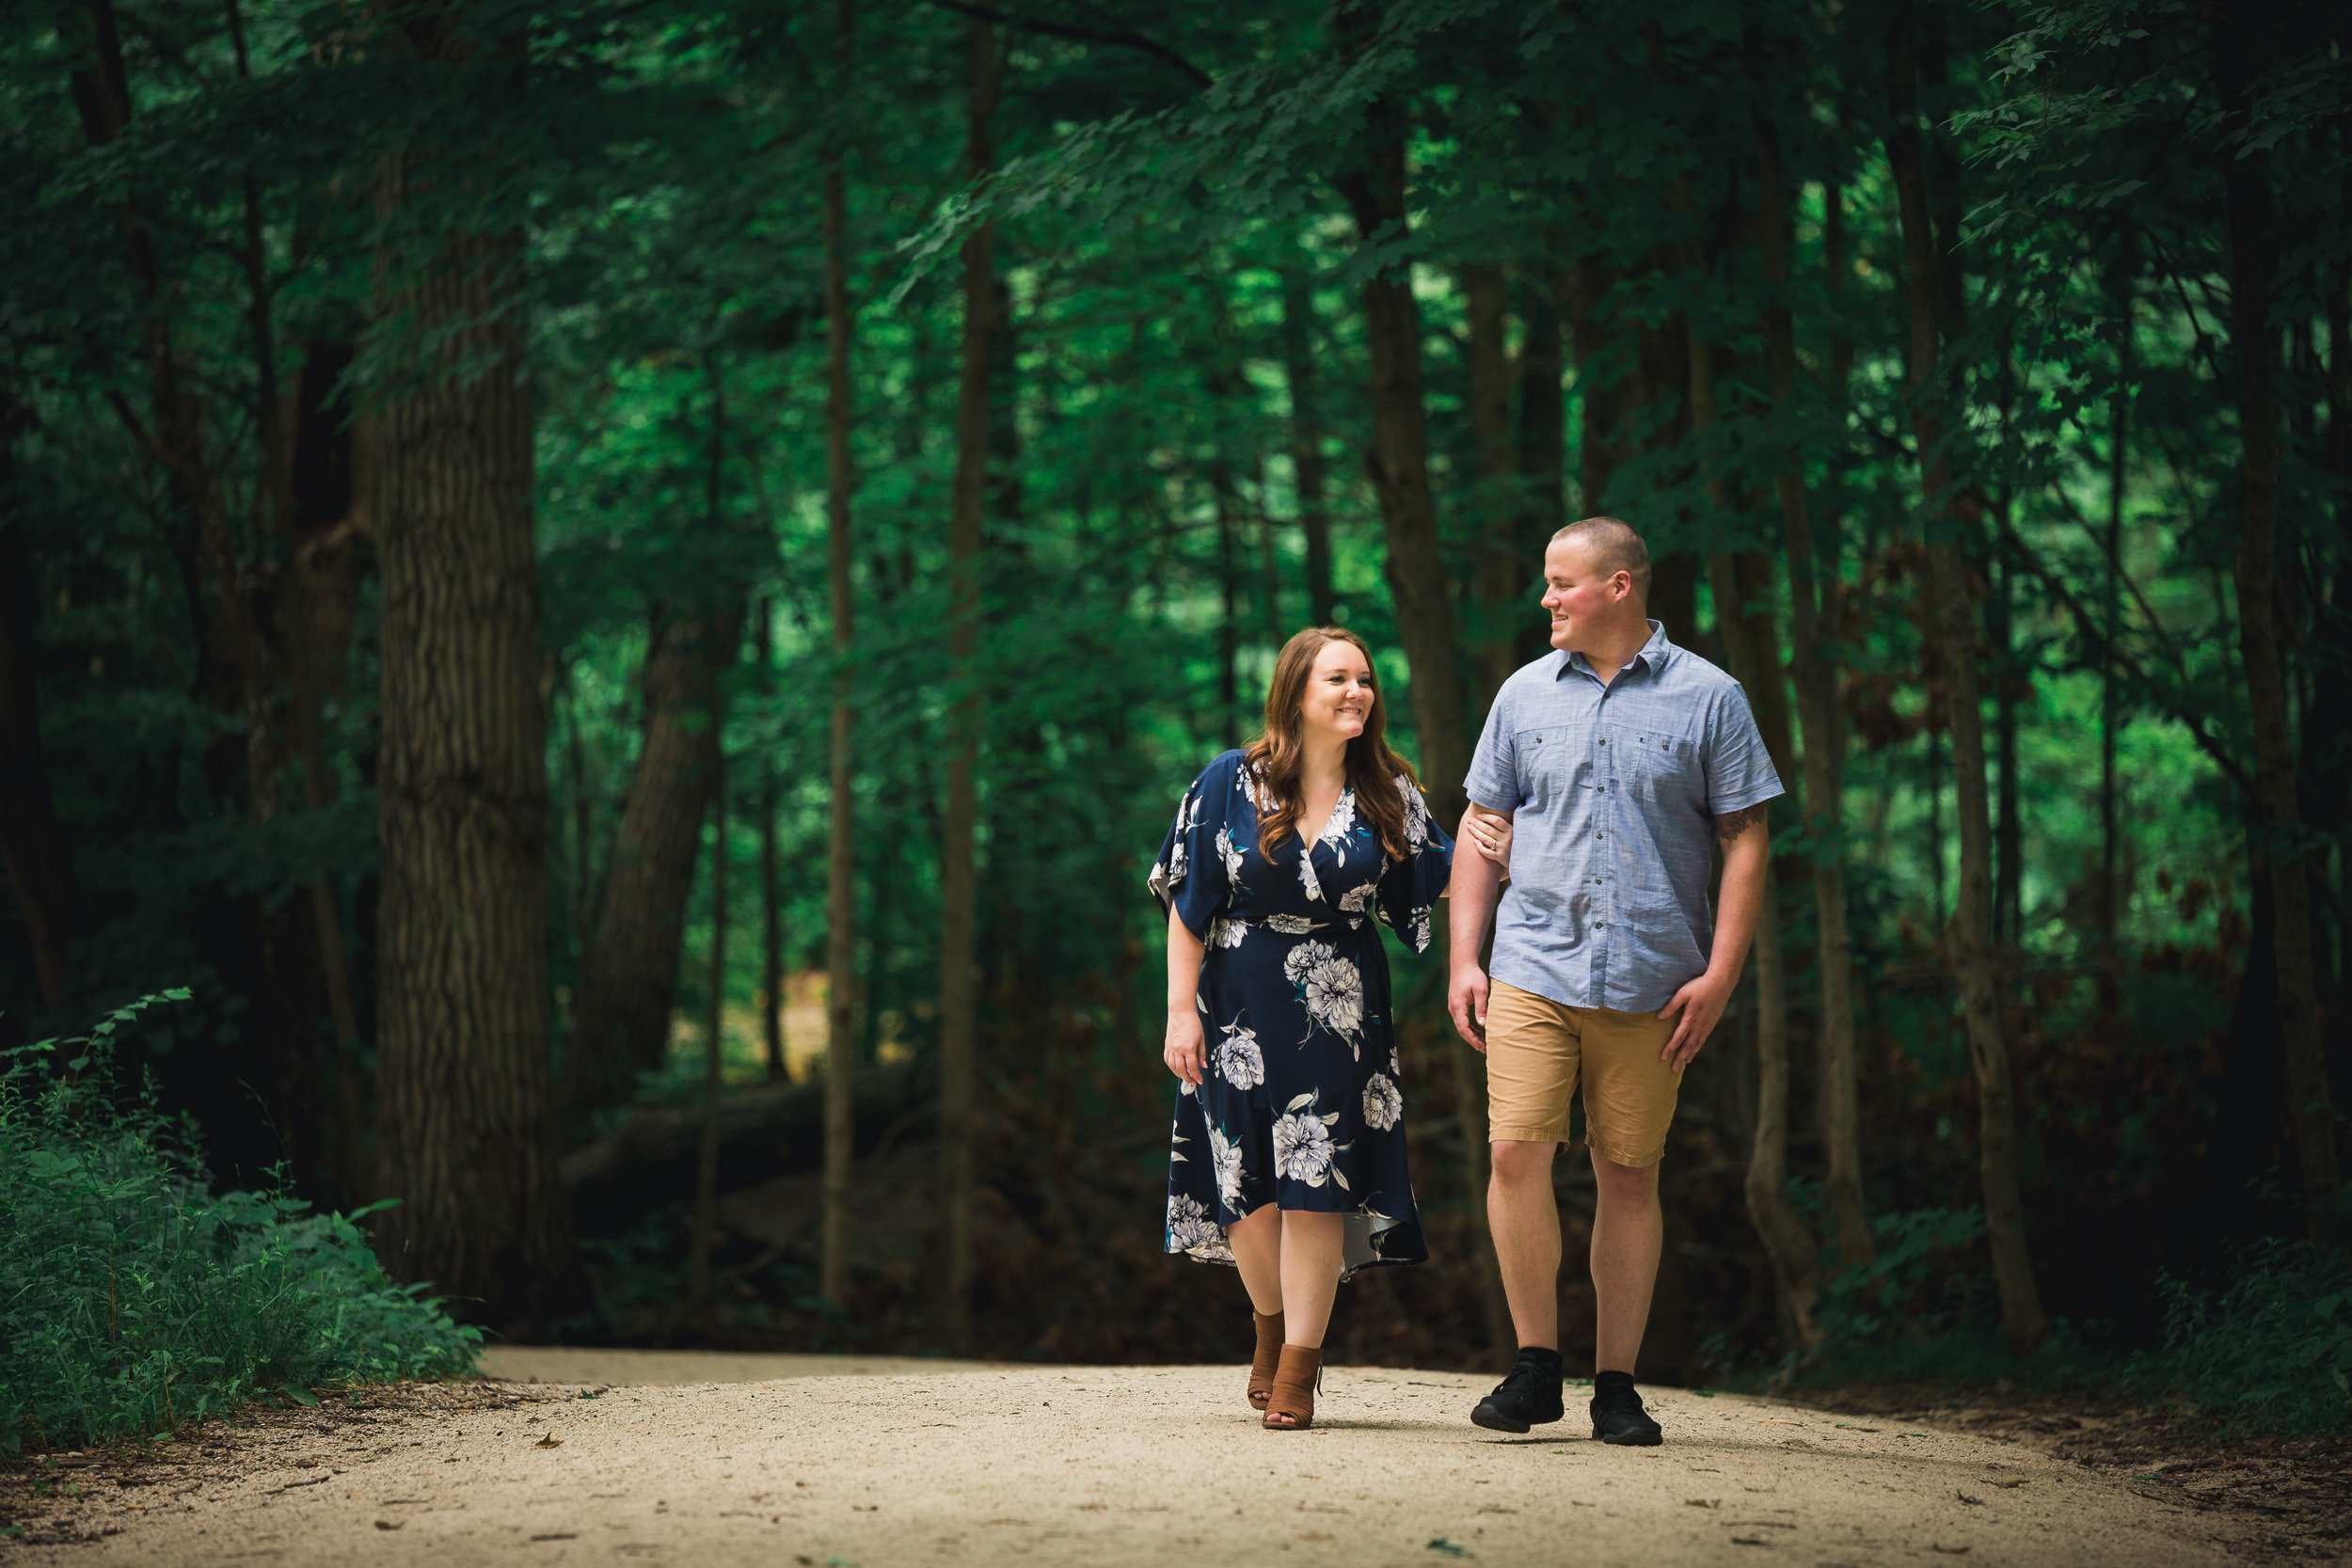 20180623_lauren_and_justin_engagement_35_5N3A4438.jpg